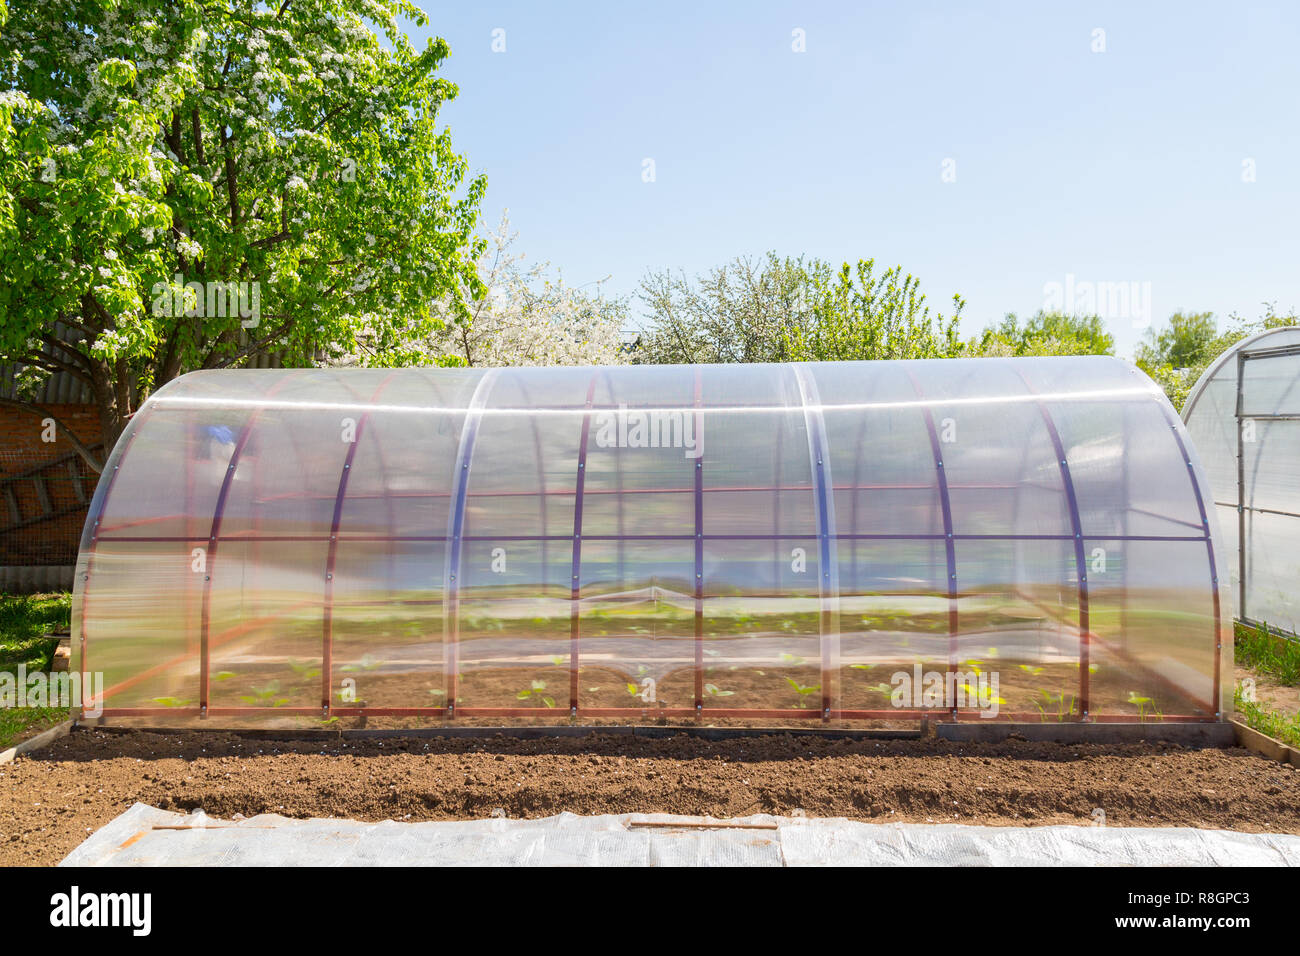 Polycarbonate greenhouse in the garden  Semicircular shape